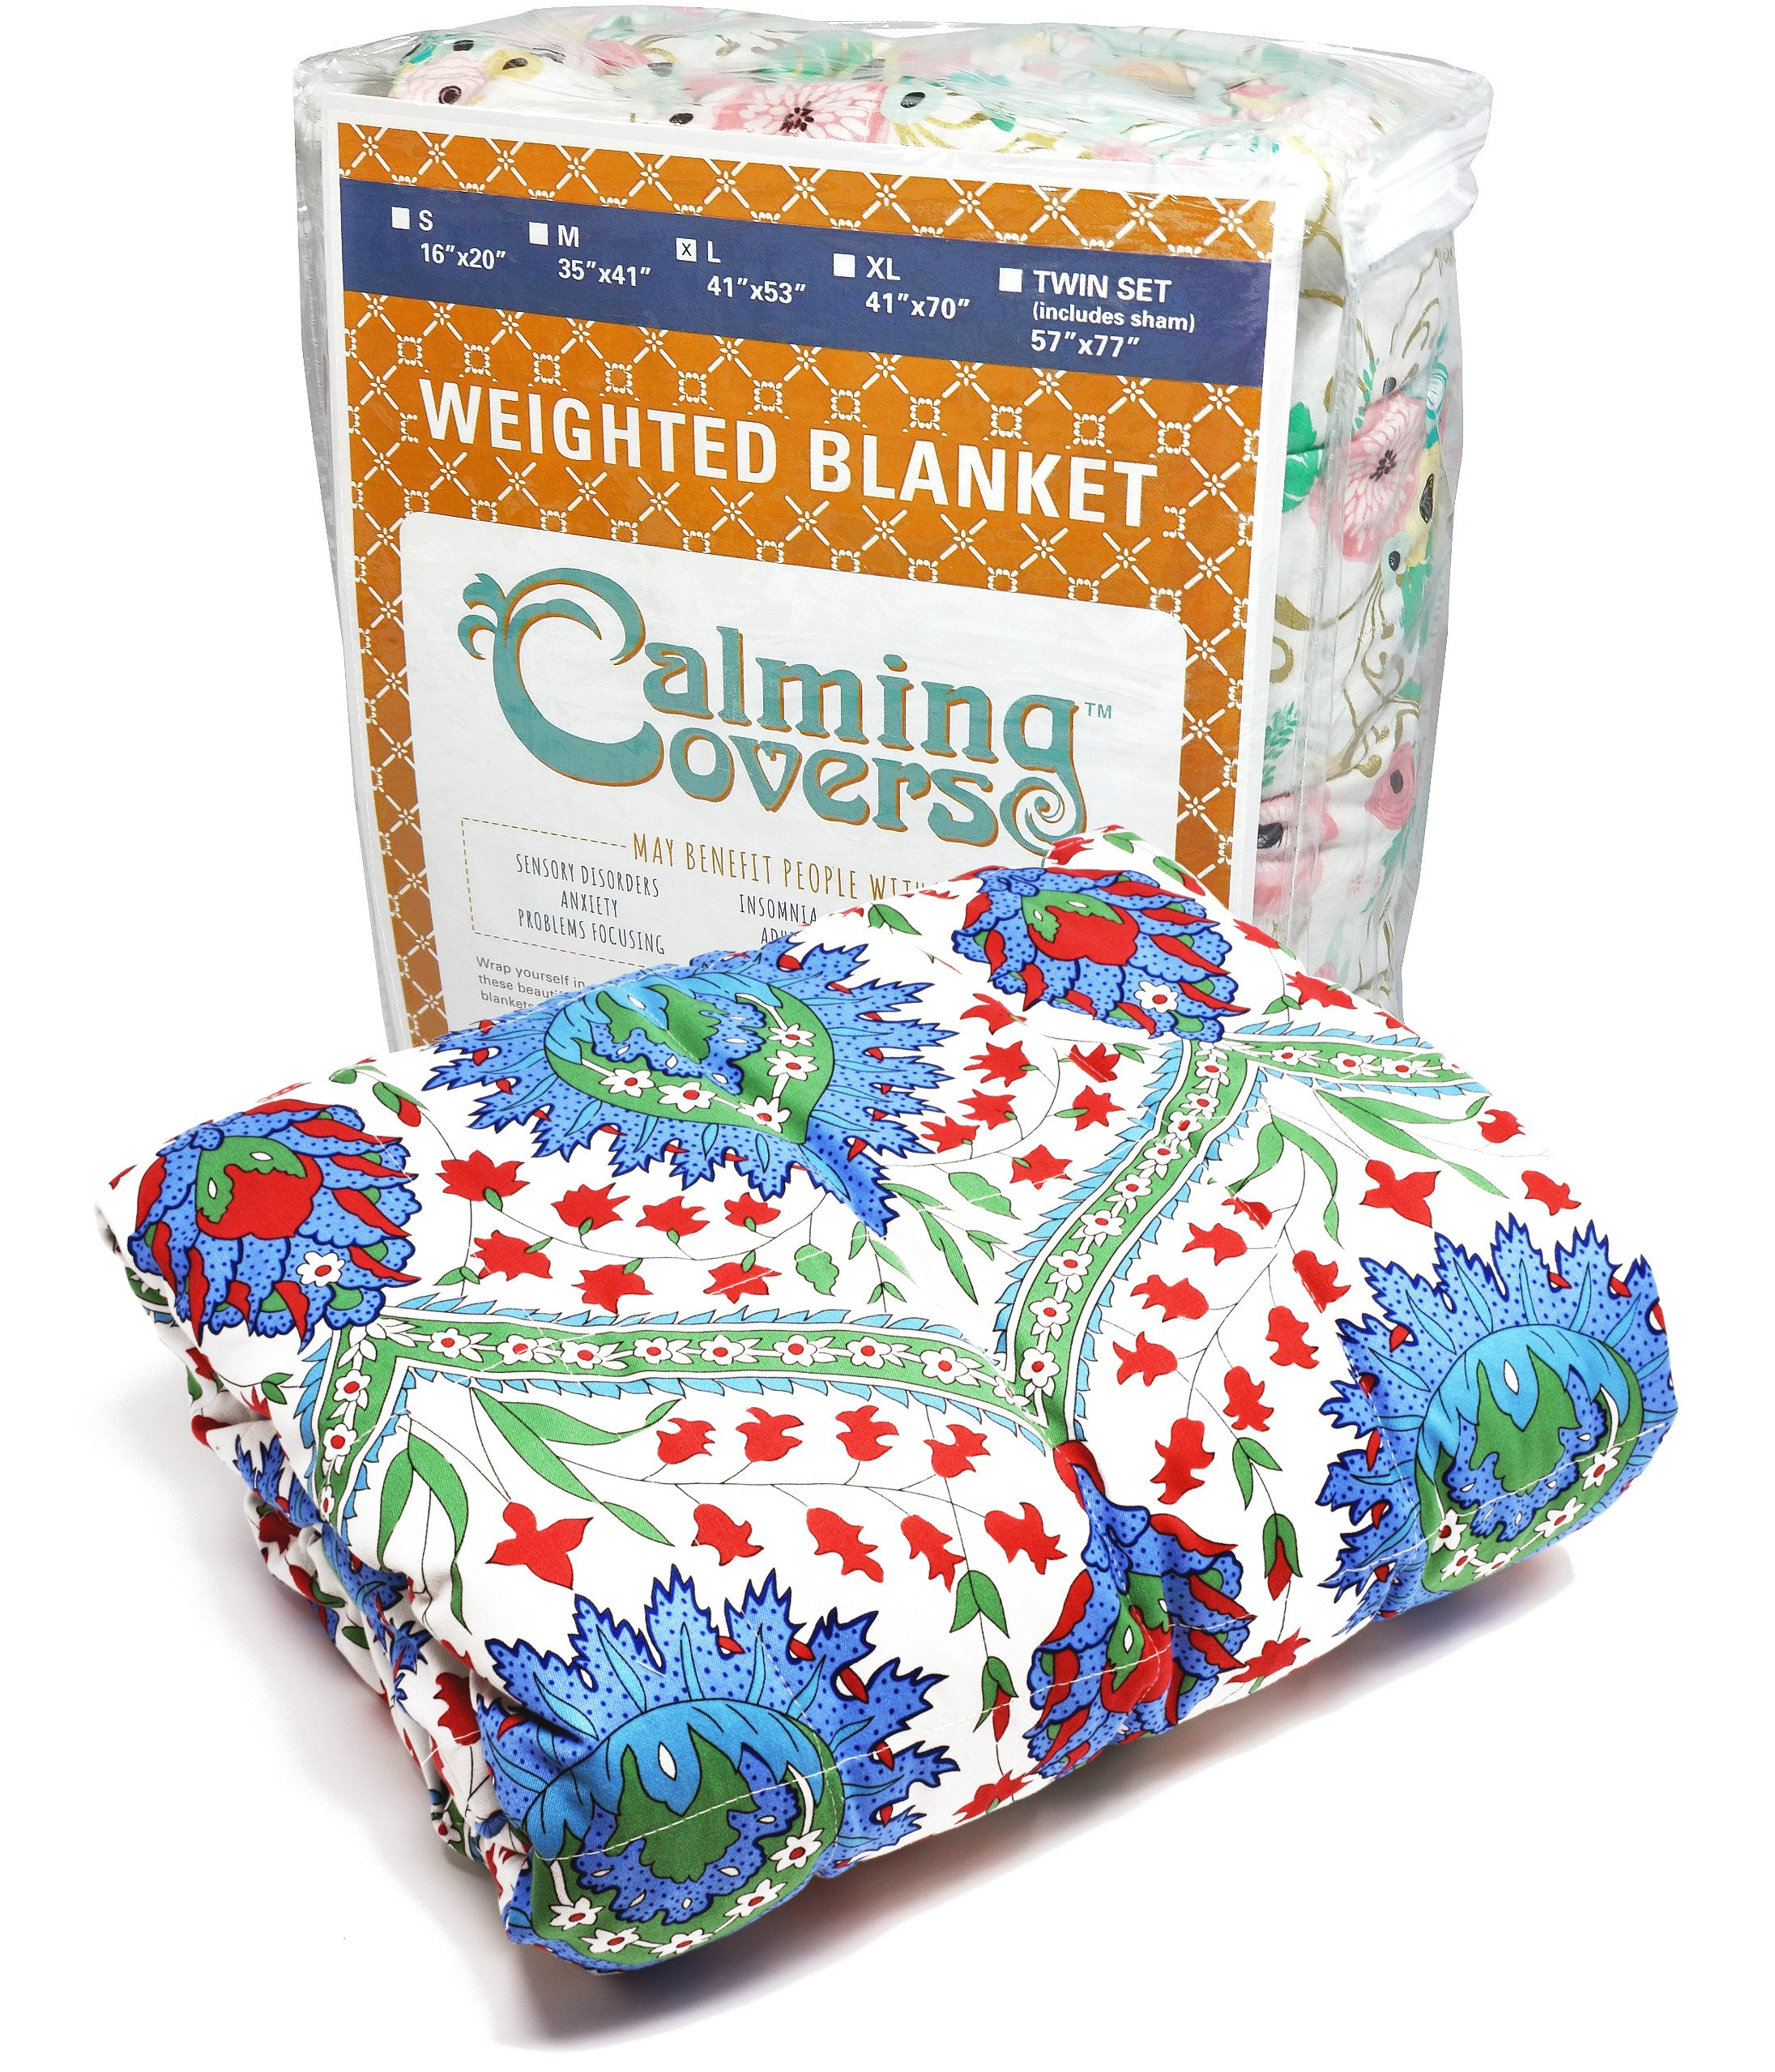 Designer Weighted Blanket for kids (or adult) | Dozens of cute styles in many sizes | Gravity blankets may help relieve anxiety, stress & insomnia | Style - Blue Paisley | Cotton - 3 lbs